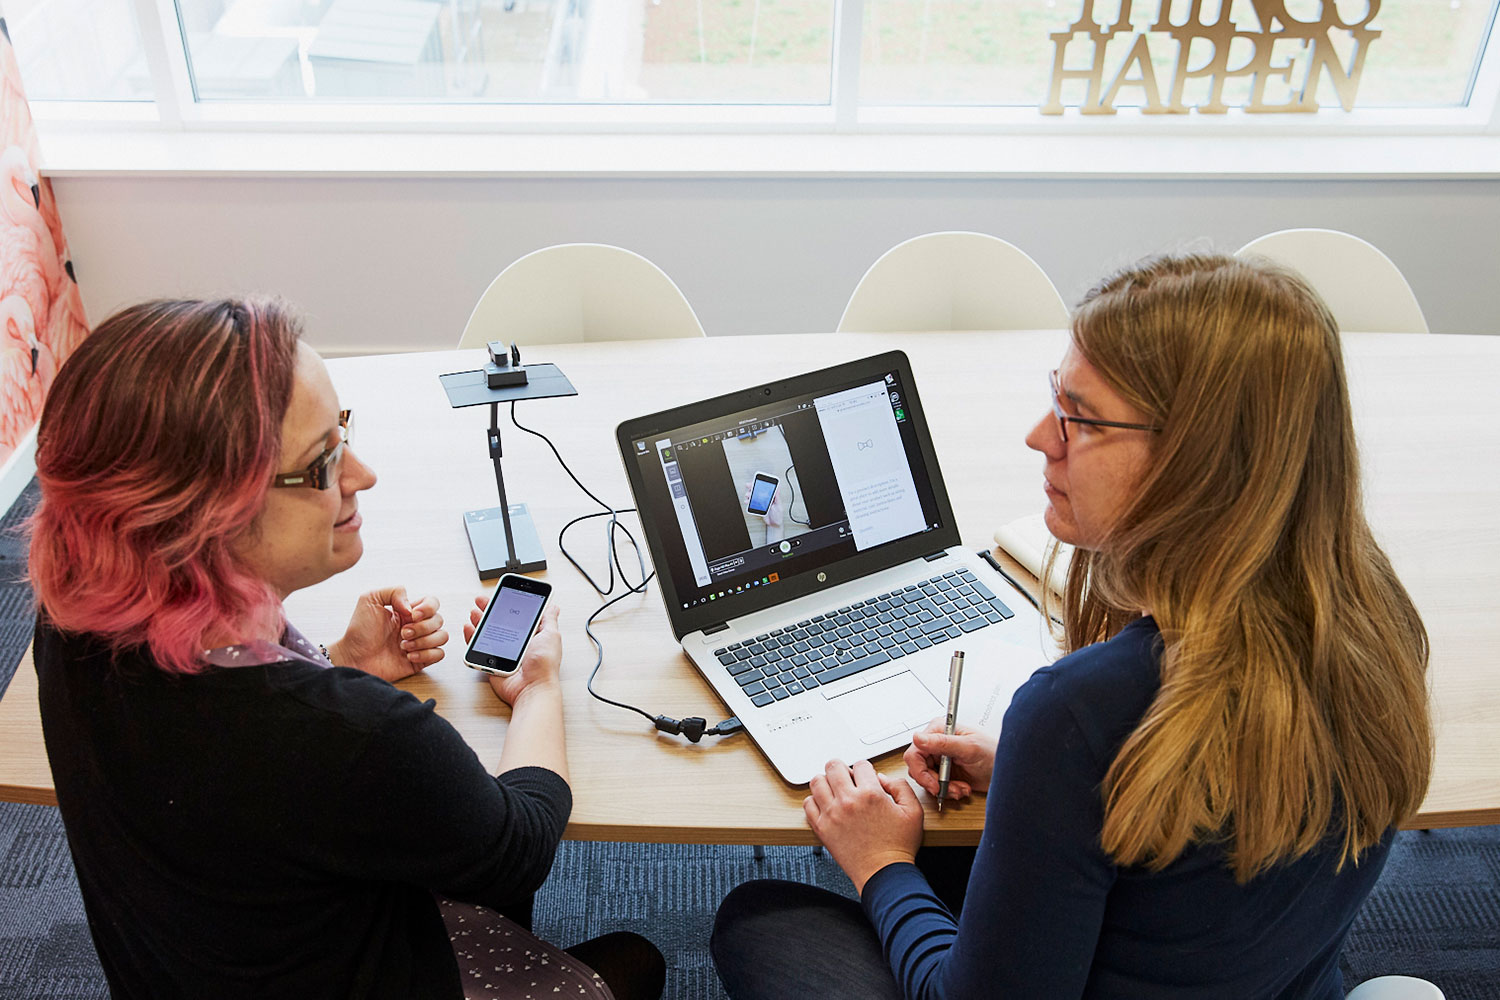 Two women discuss issues during snapshot user testing